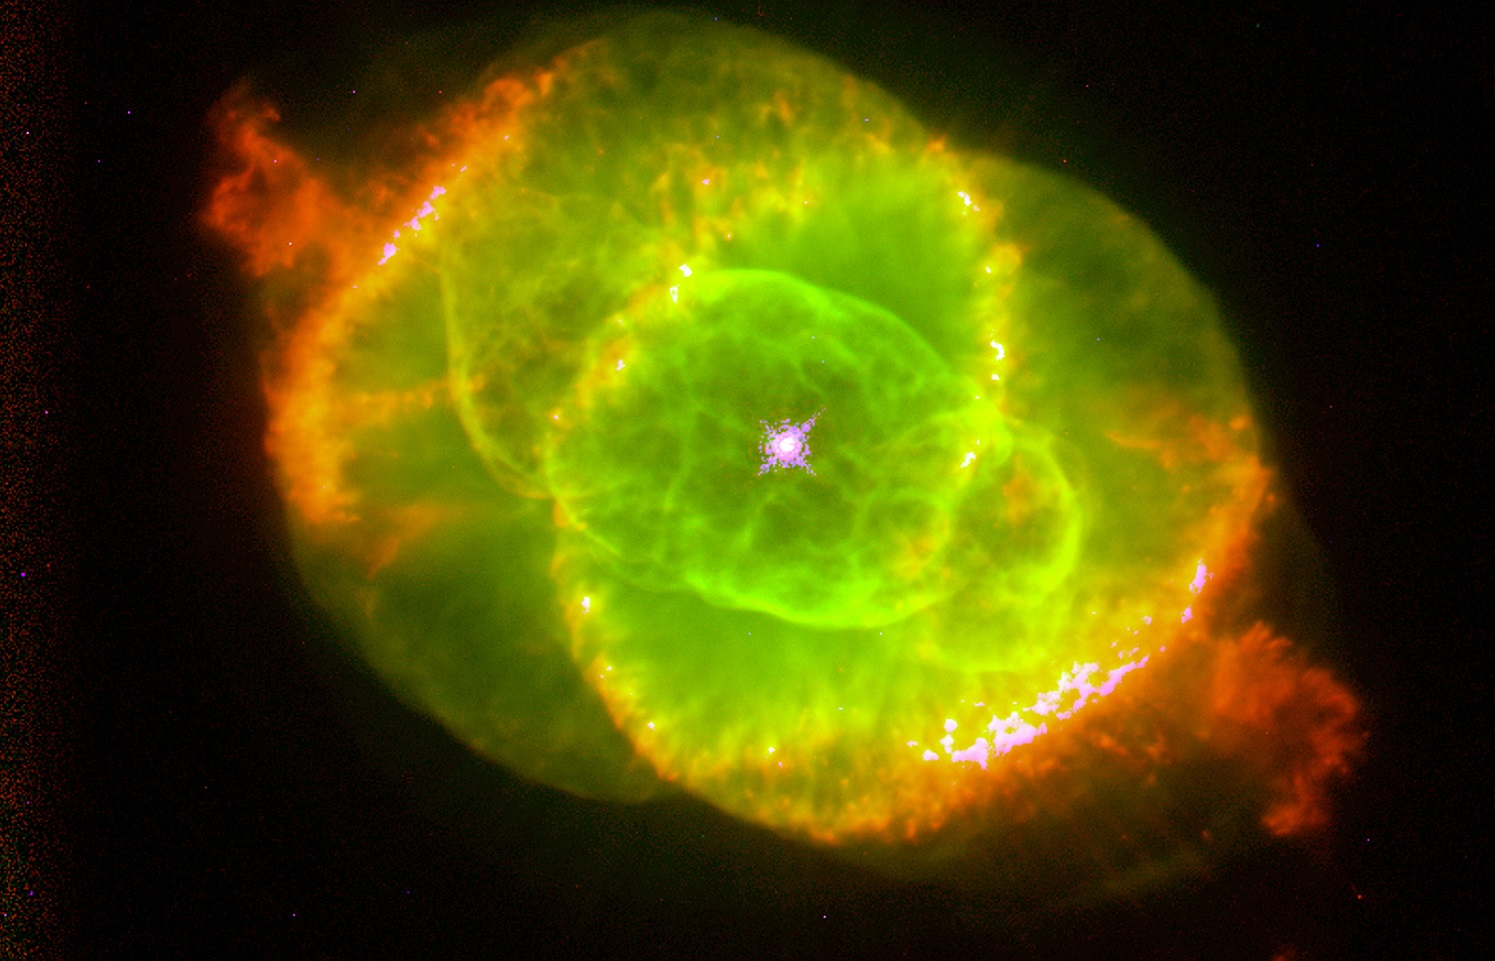 Cats-Eye-Nebula-photo-by-NASA-public-domain.jpg